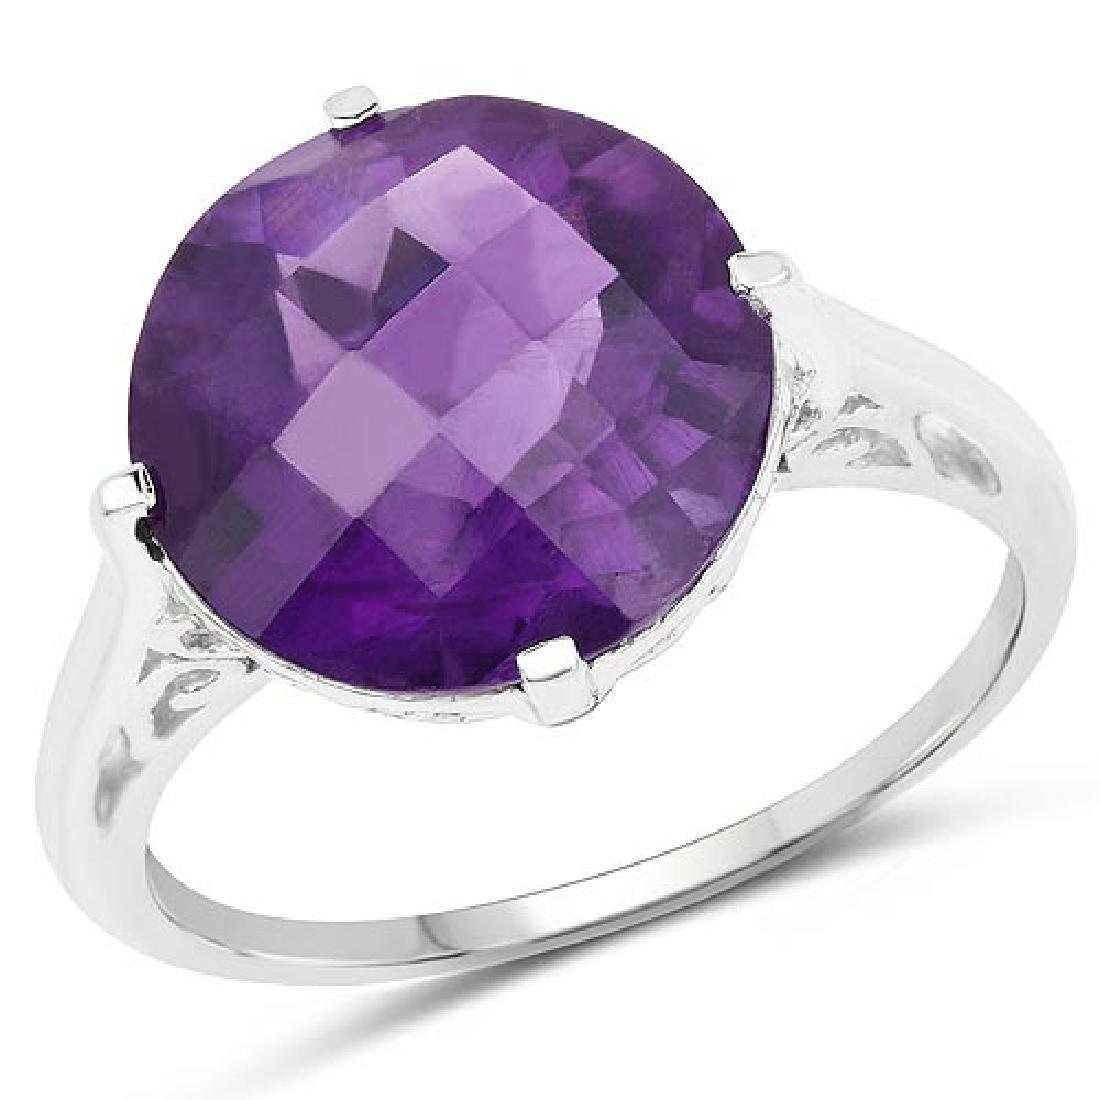 5.60 Carat Genuine Amethyst .925 Sterling Silver Ring